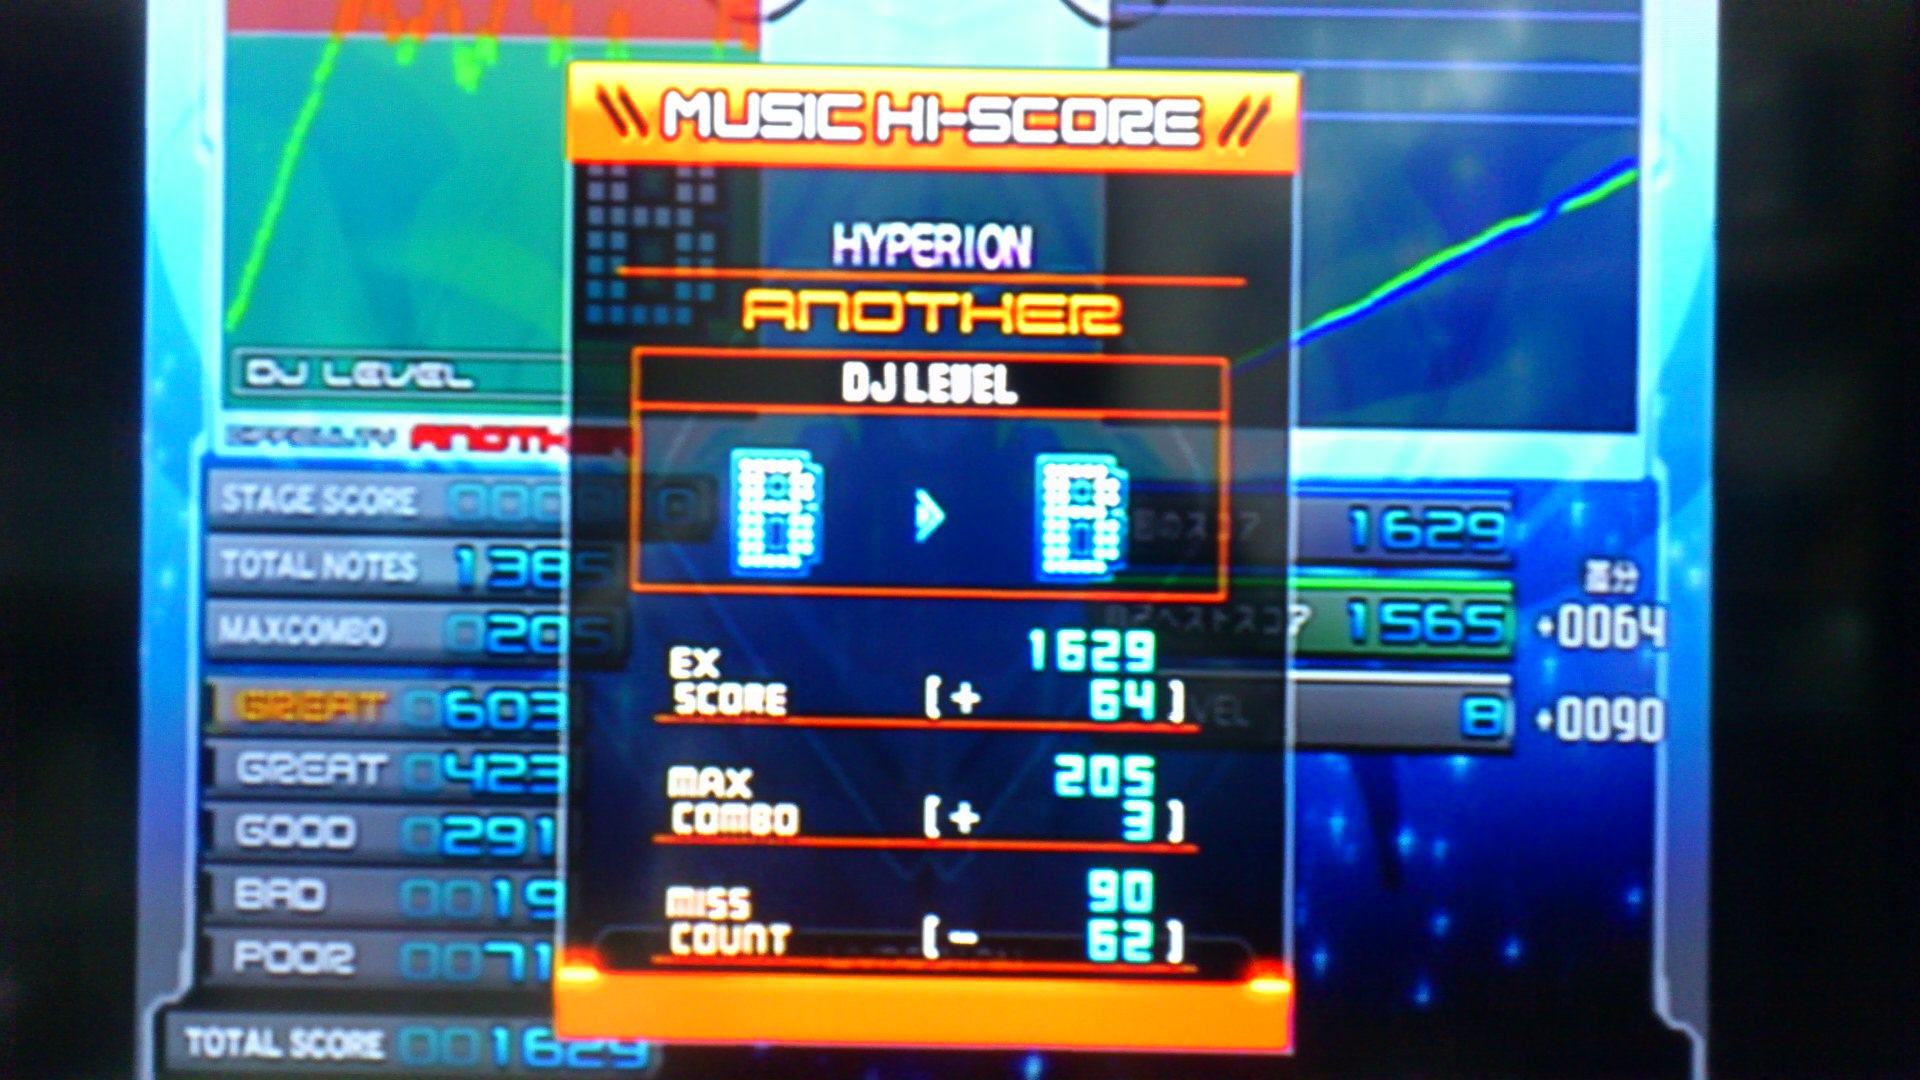 HYPERION穴ノマゲ